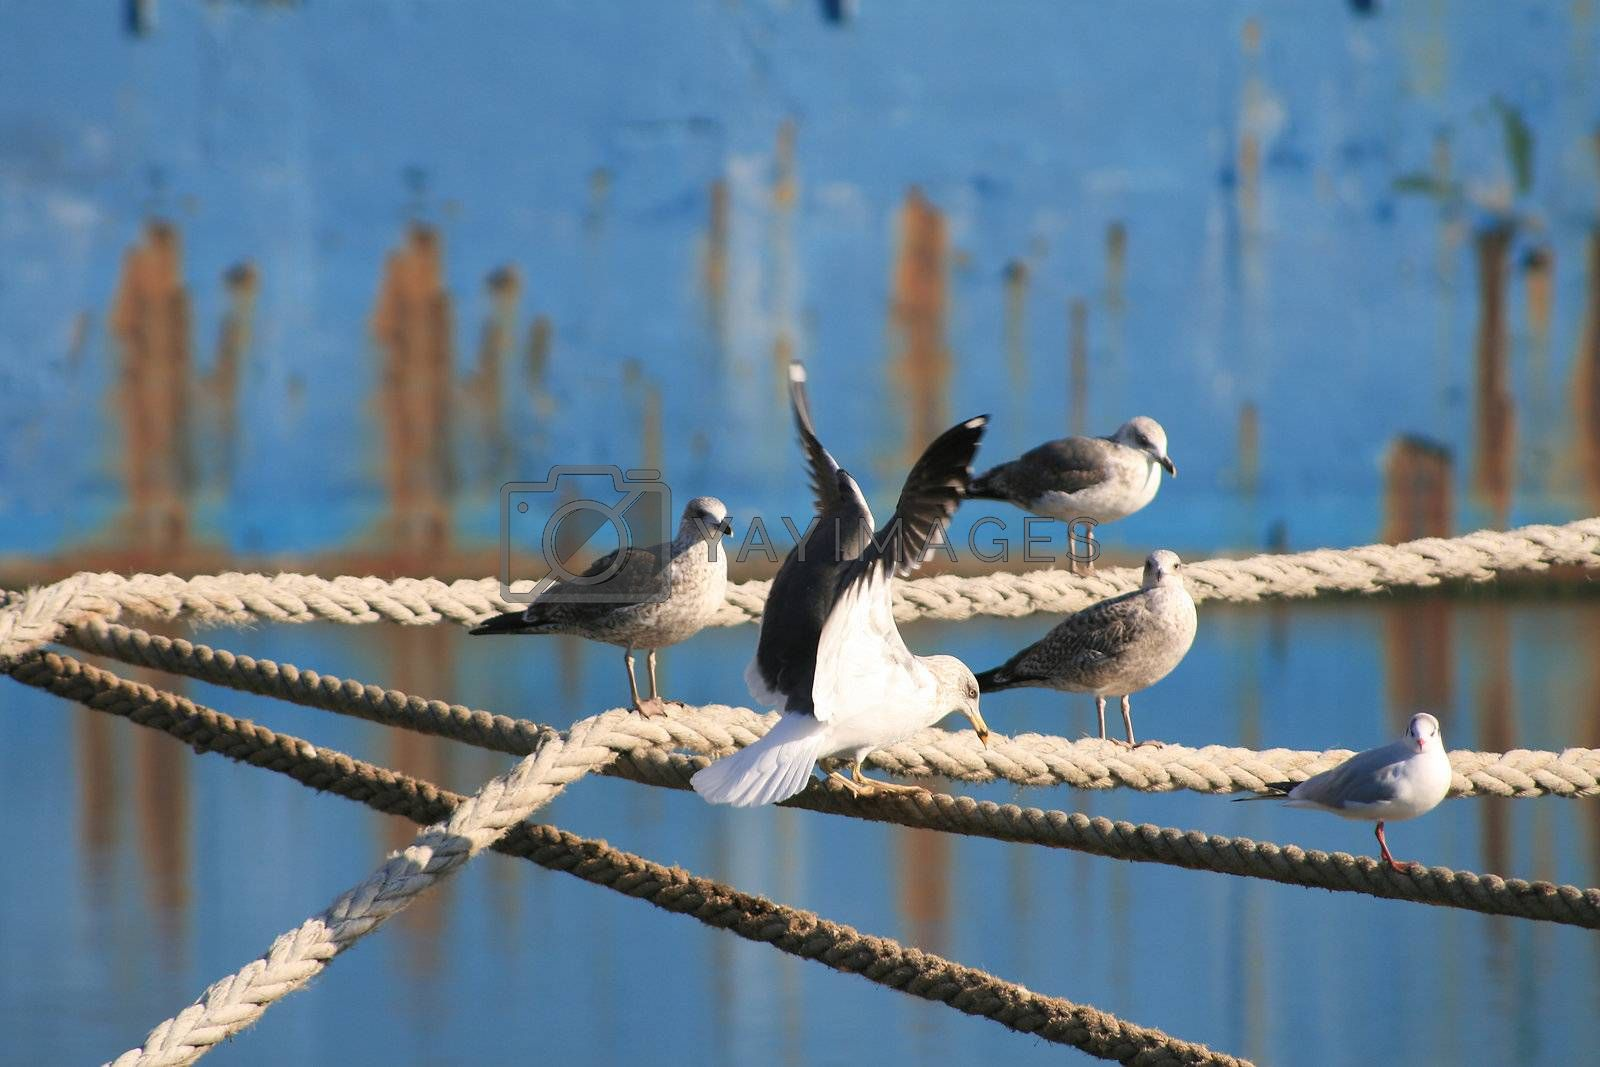 Seagulls in the rope by PauloResende